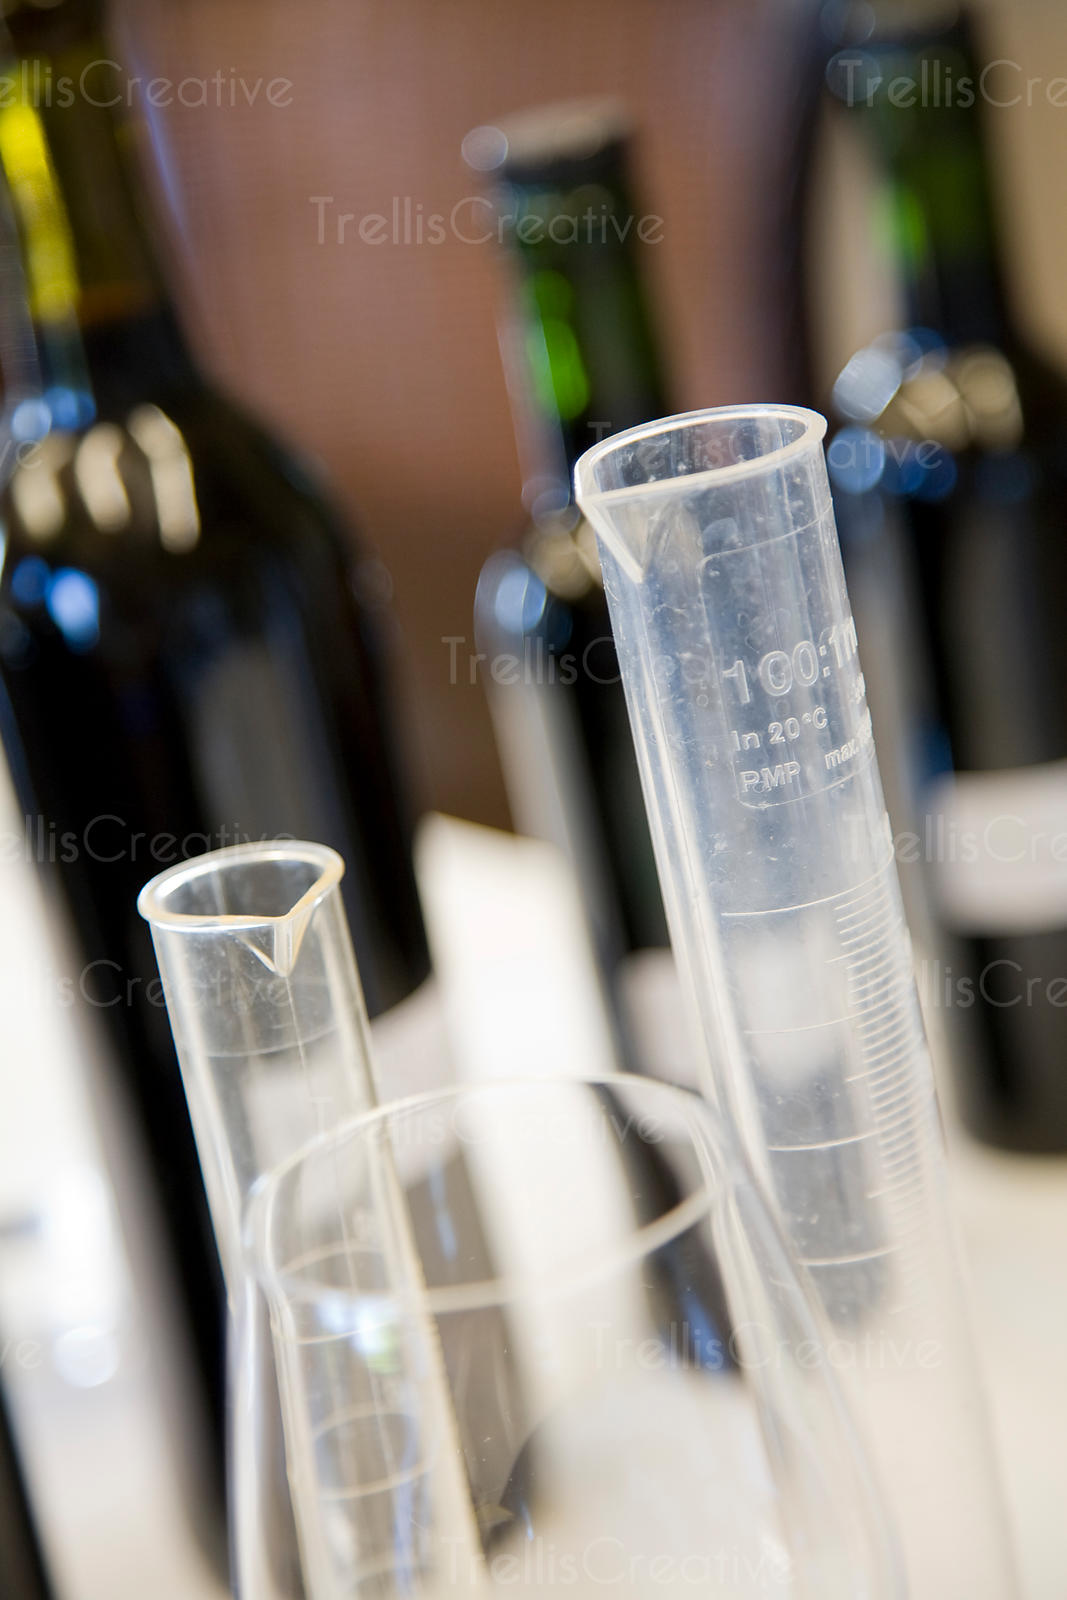 Measuring beakers for blending wine